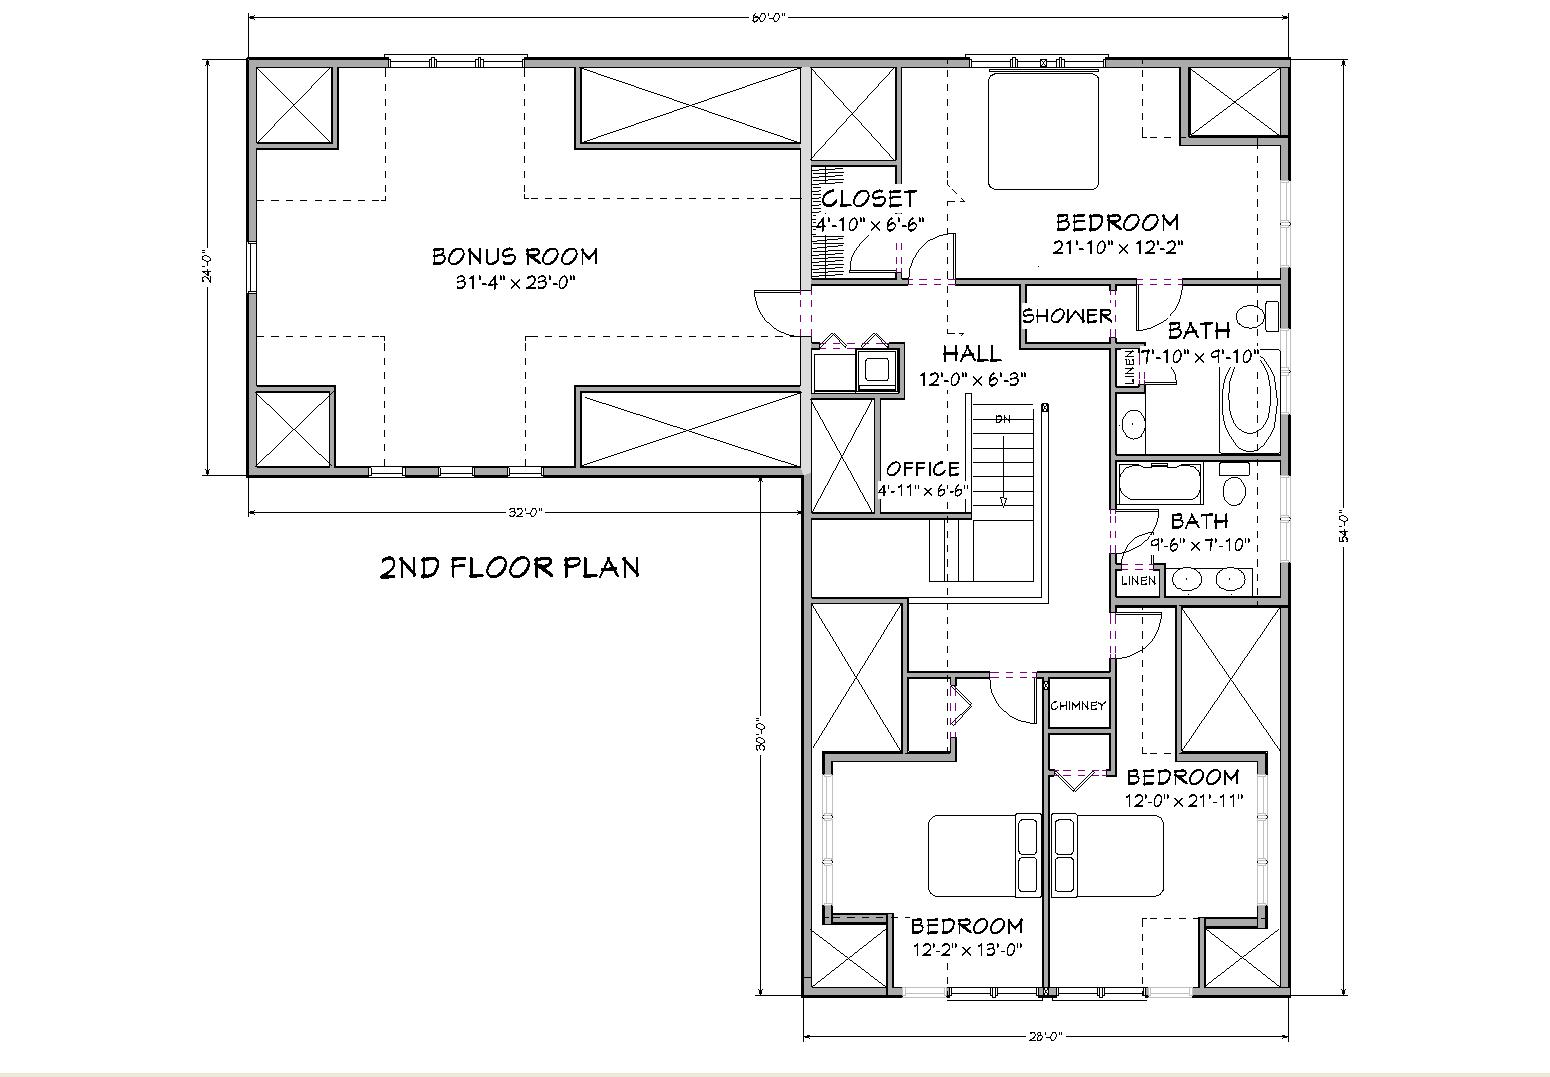 3000 square foot home plans floor plans for How big is 2500 square feet